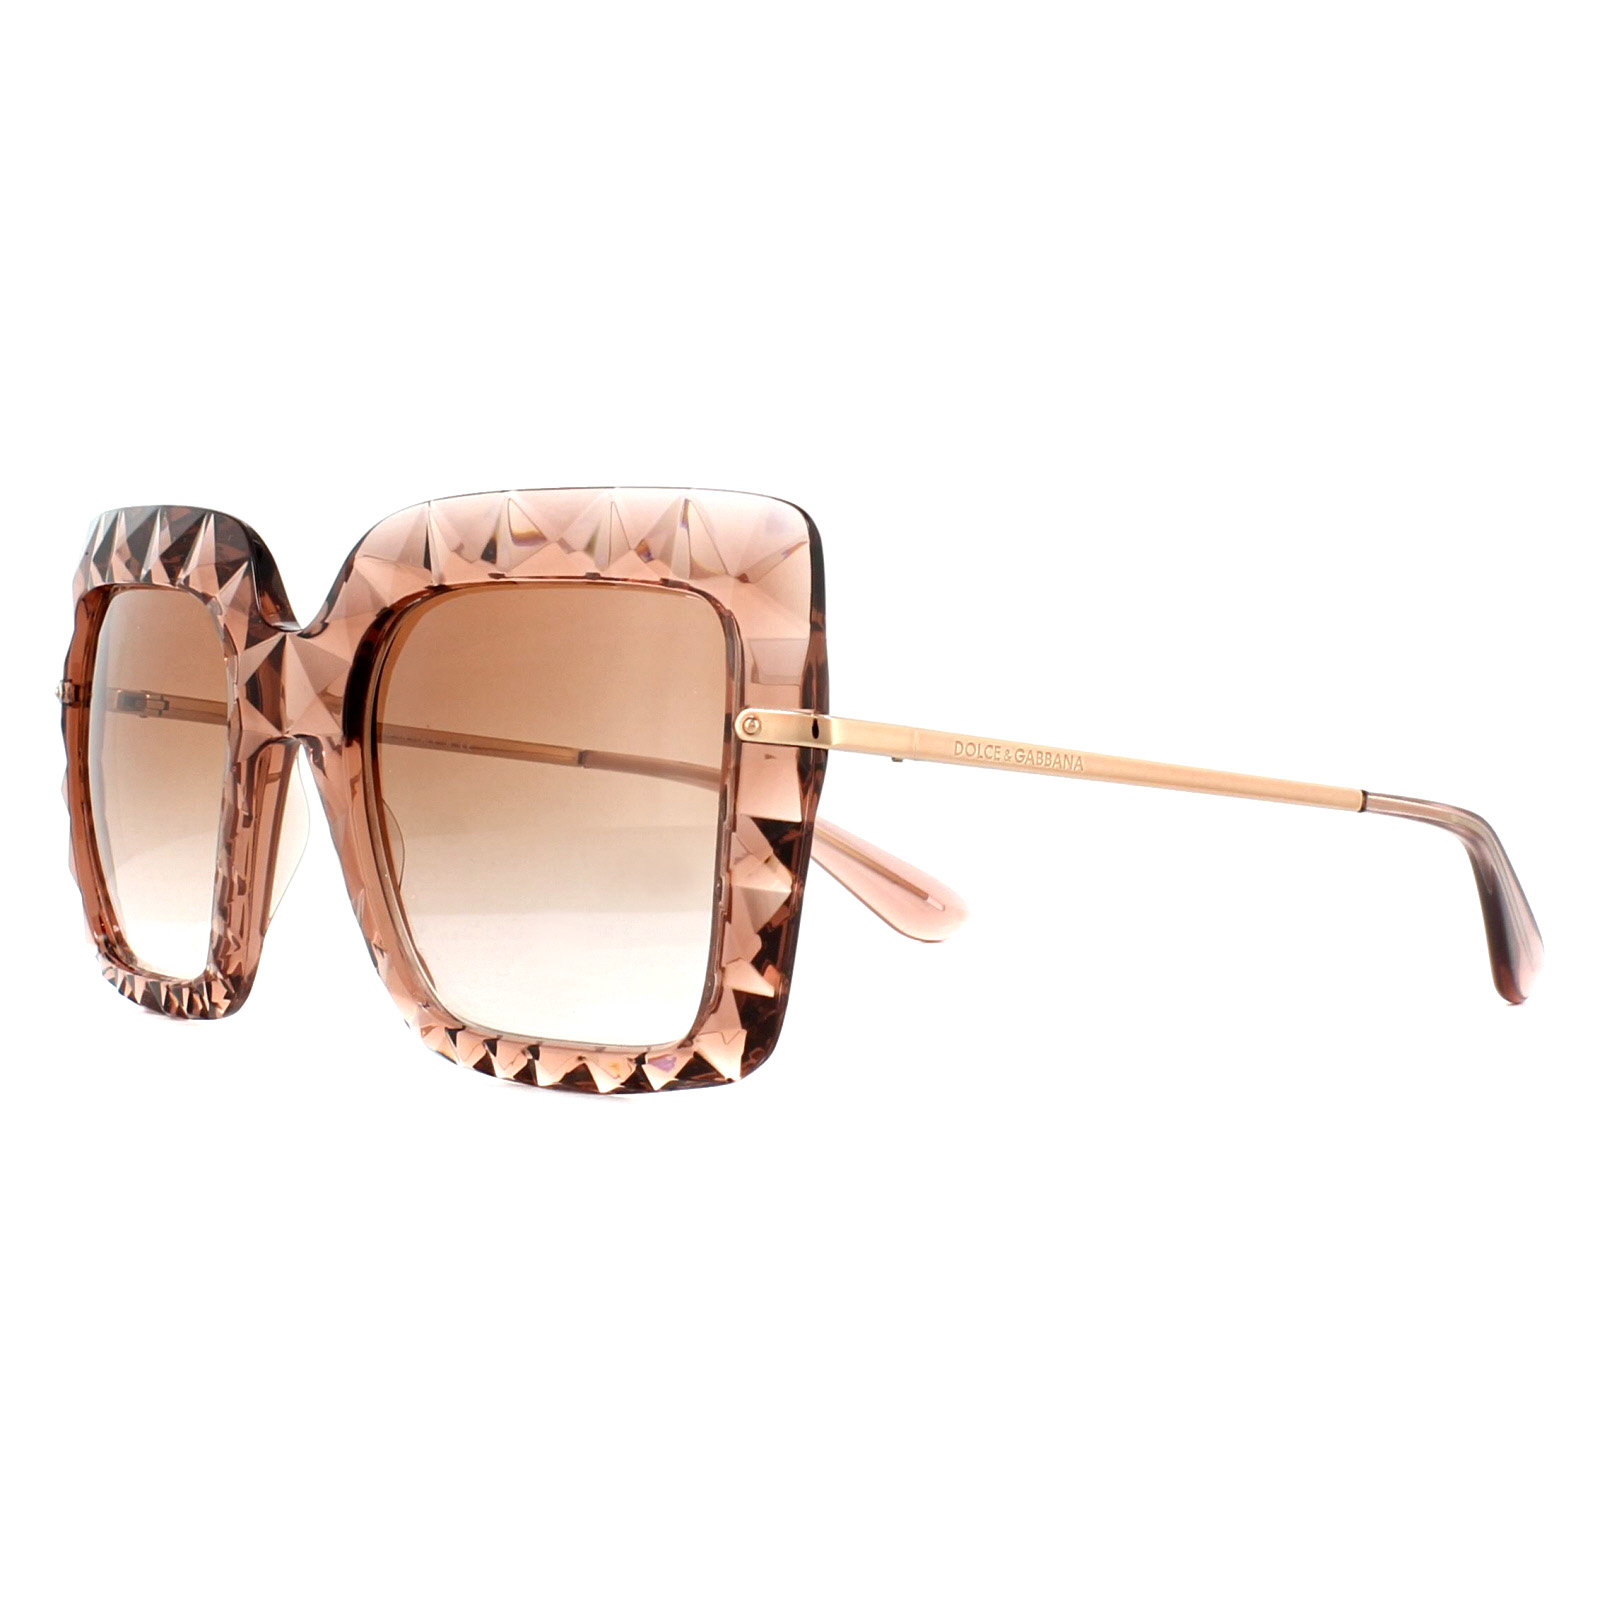 e3625757f4 Sentinel Dolce   Gabbana Sunglasses DG6111 314813 Pink Gold Pink Gradient